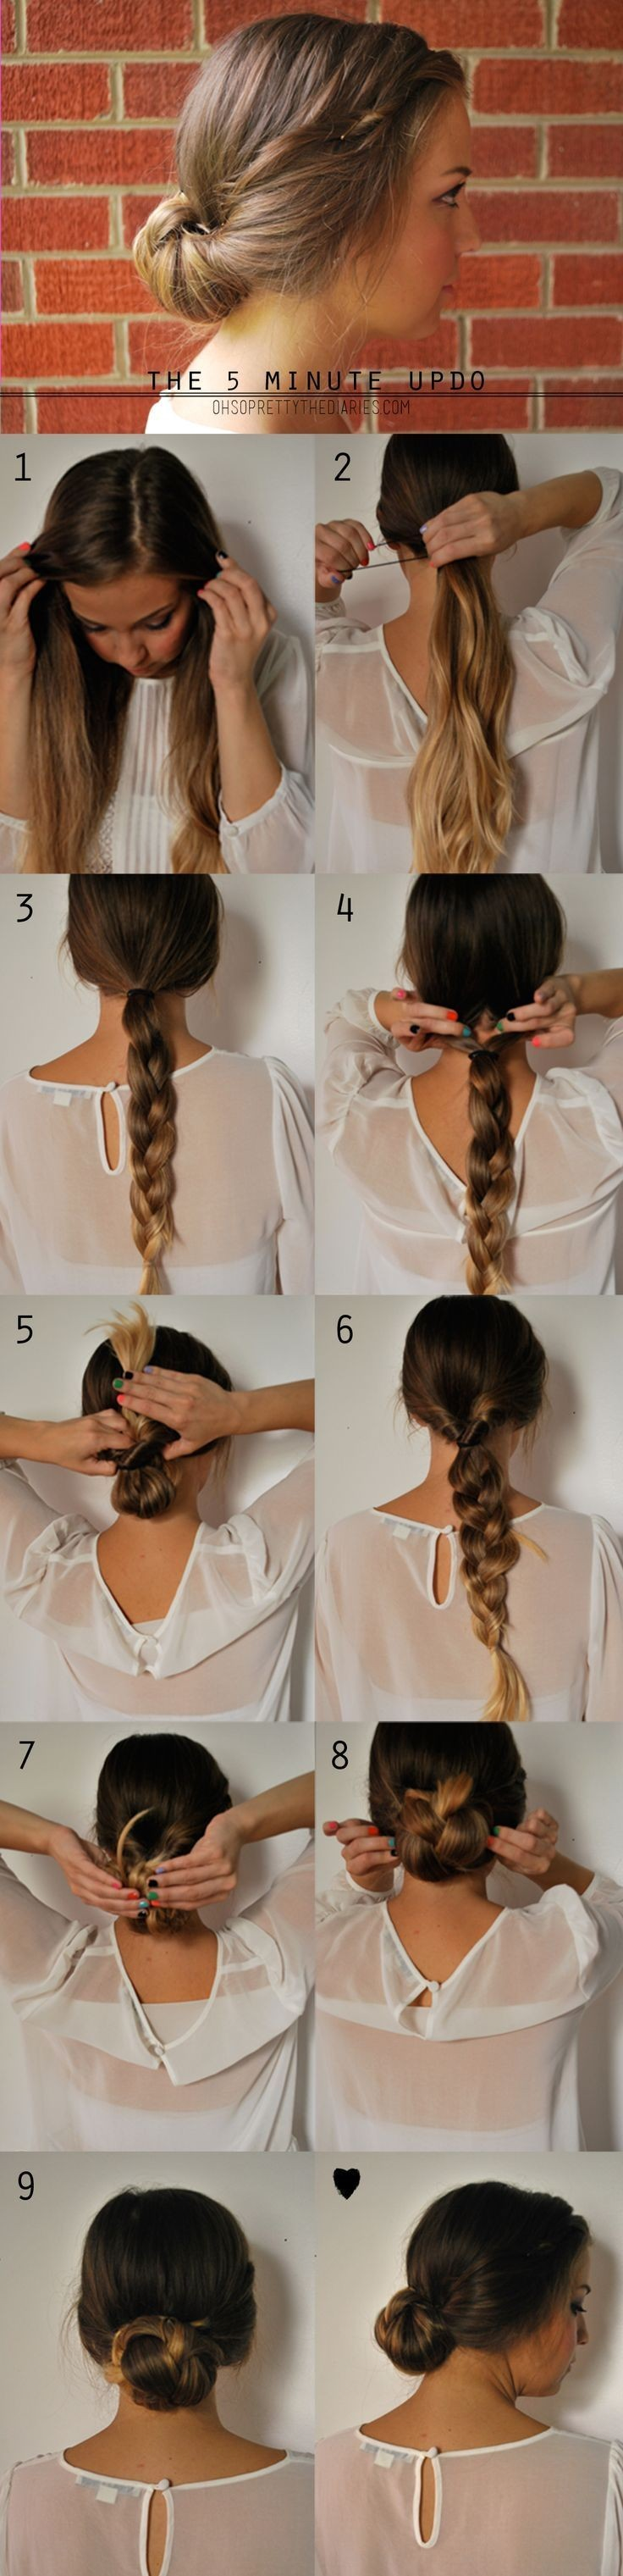 5 minutes updo for long hair